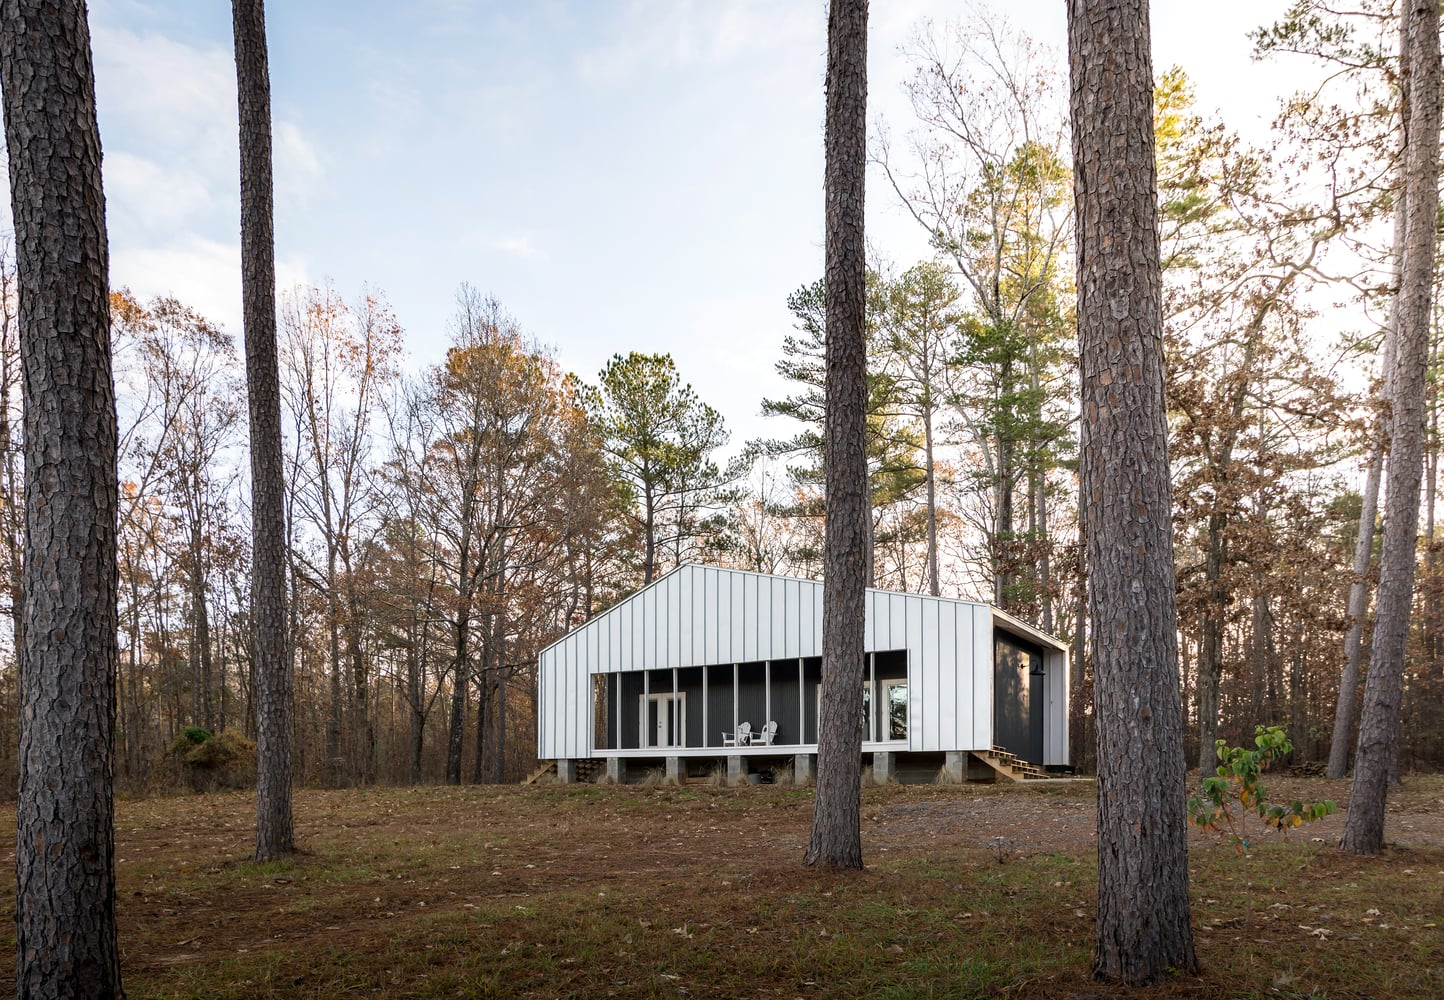 The Starkville Nash Tiny Home by Archimania